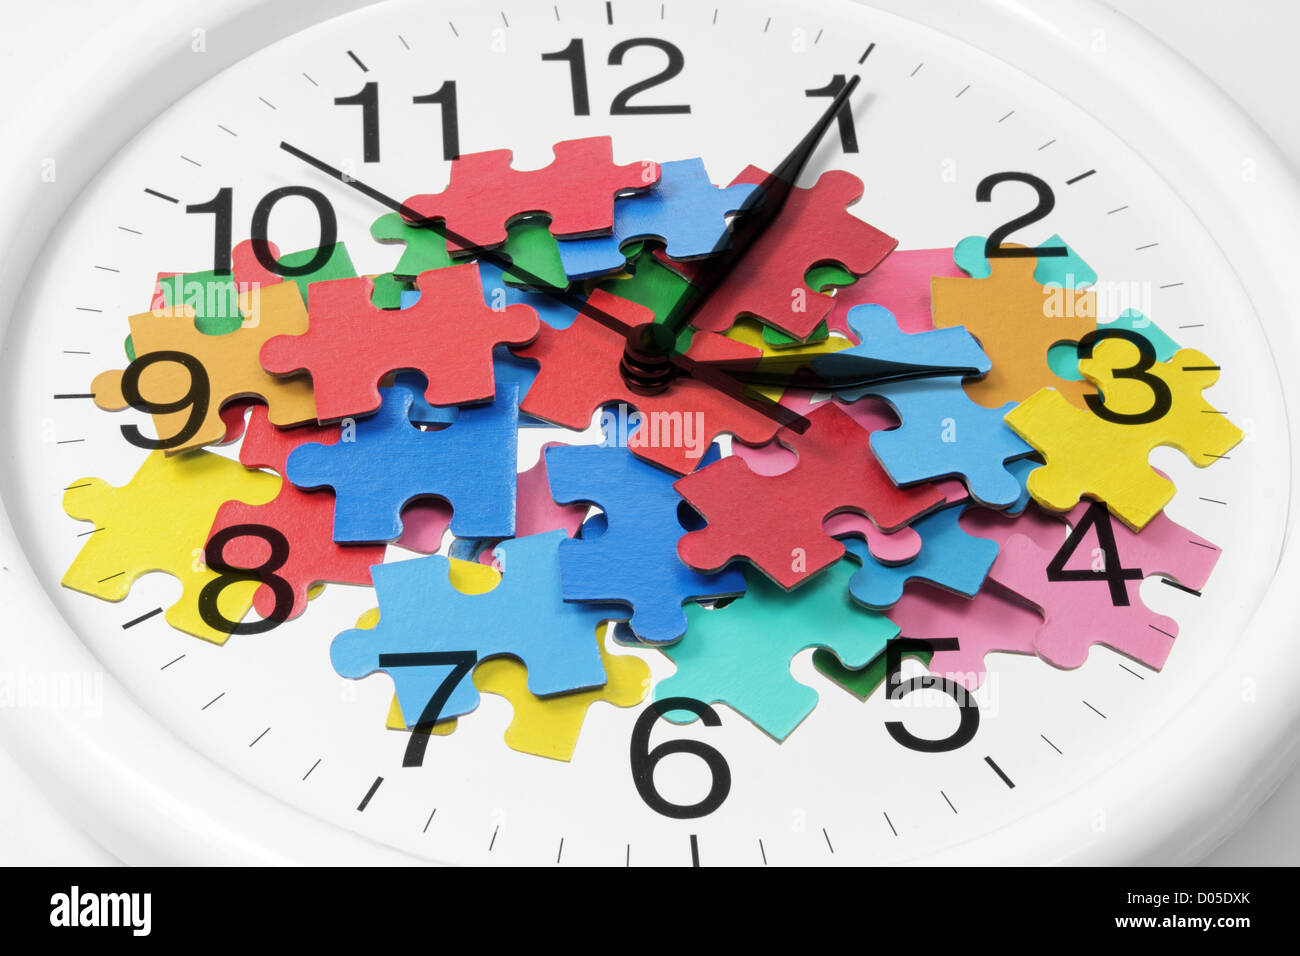 Clock and Jigsaw Puzzle Pieces - Stock Image